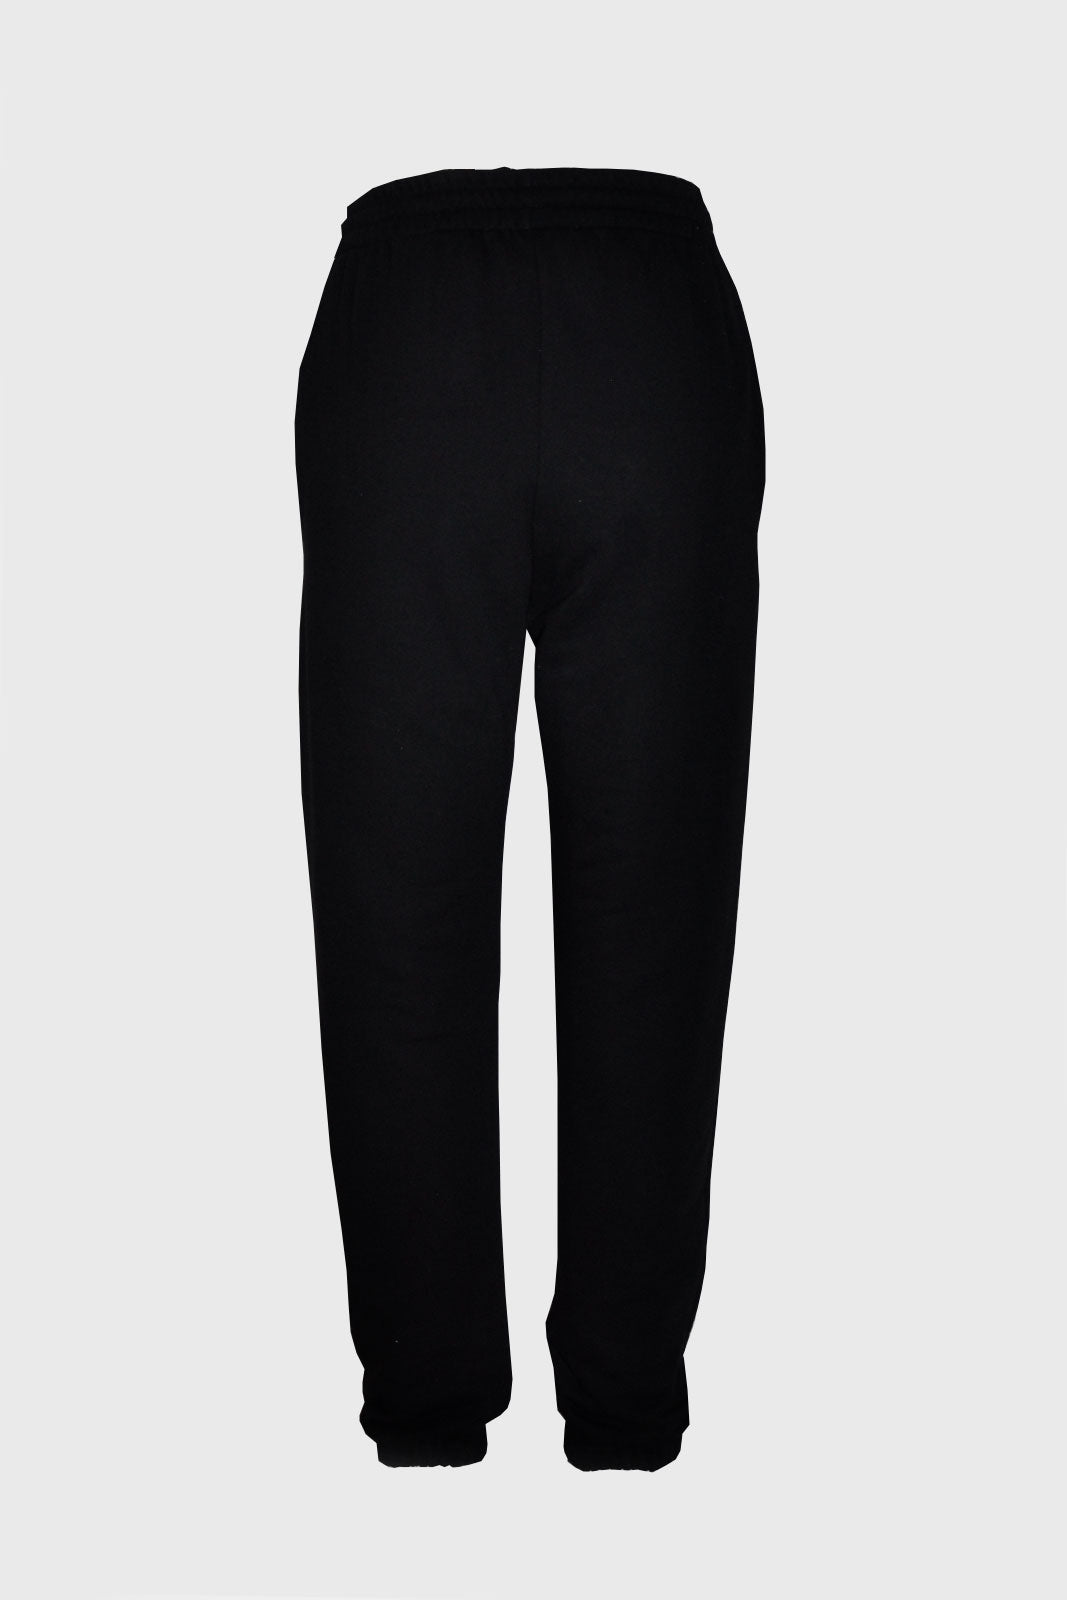 UNIFORM | Black lounge wear joggers